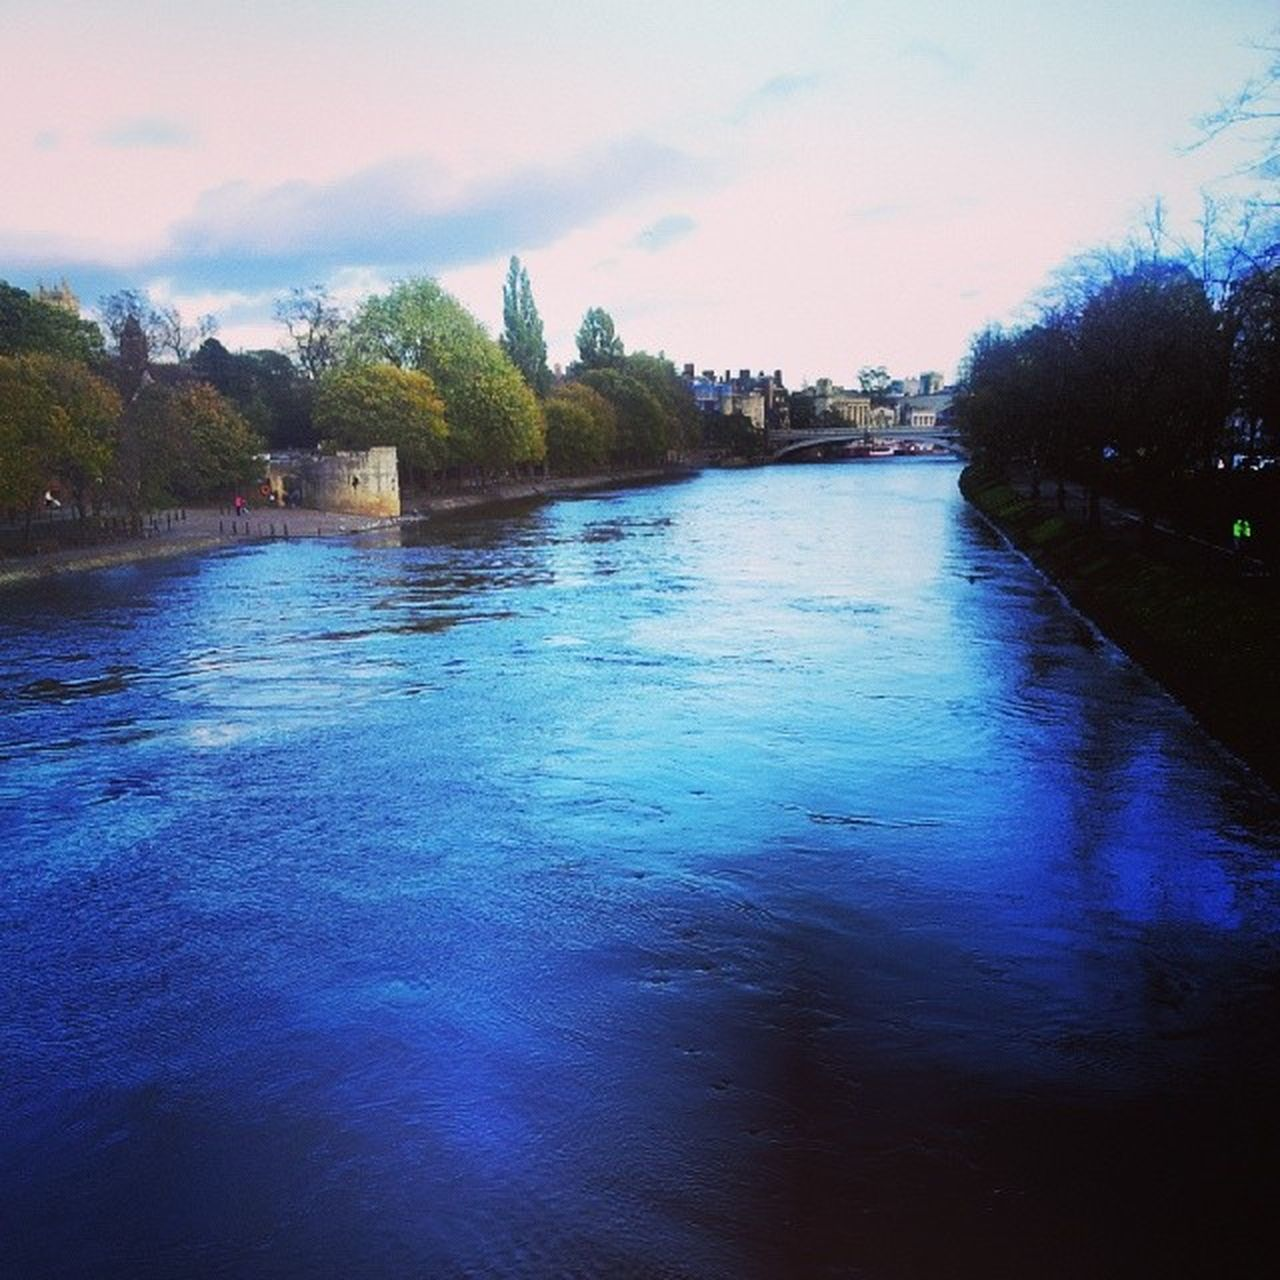 Looking downstream on River Ouse